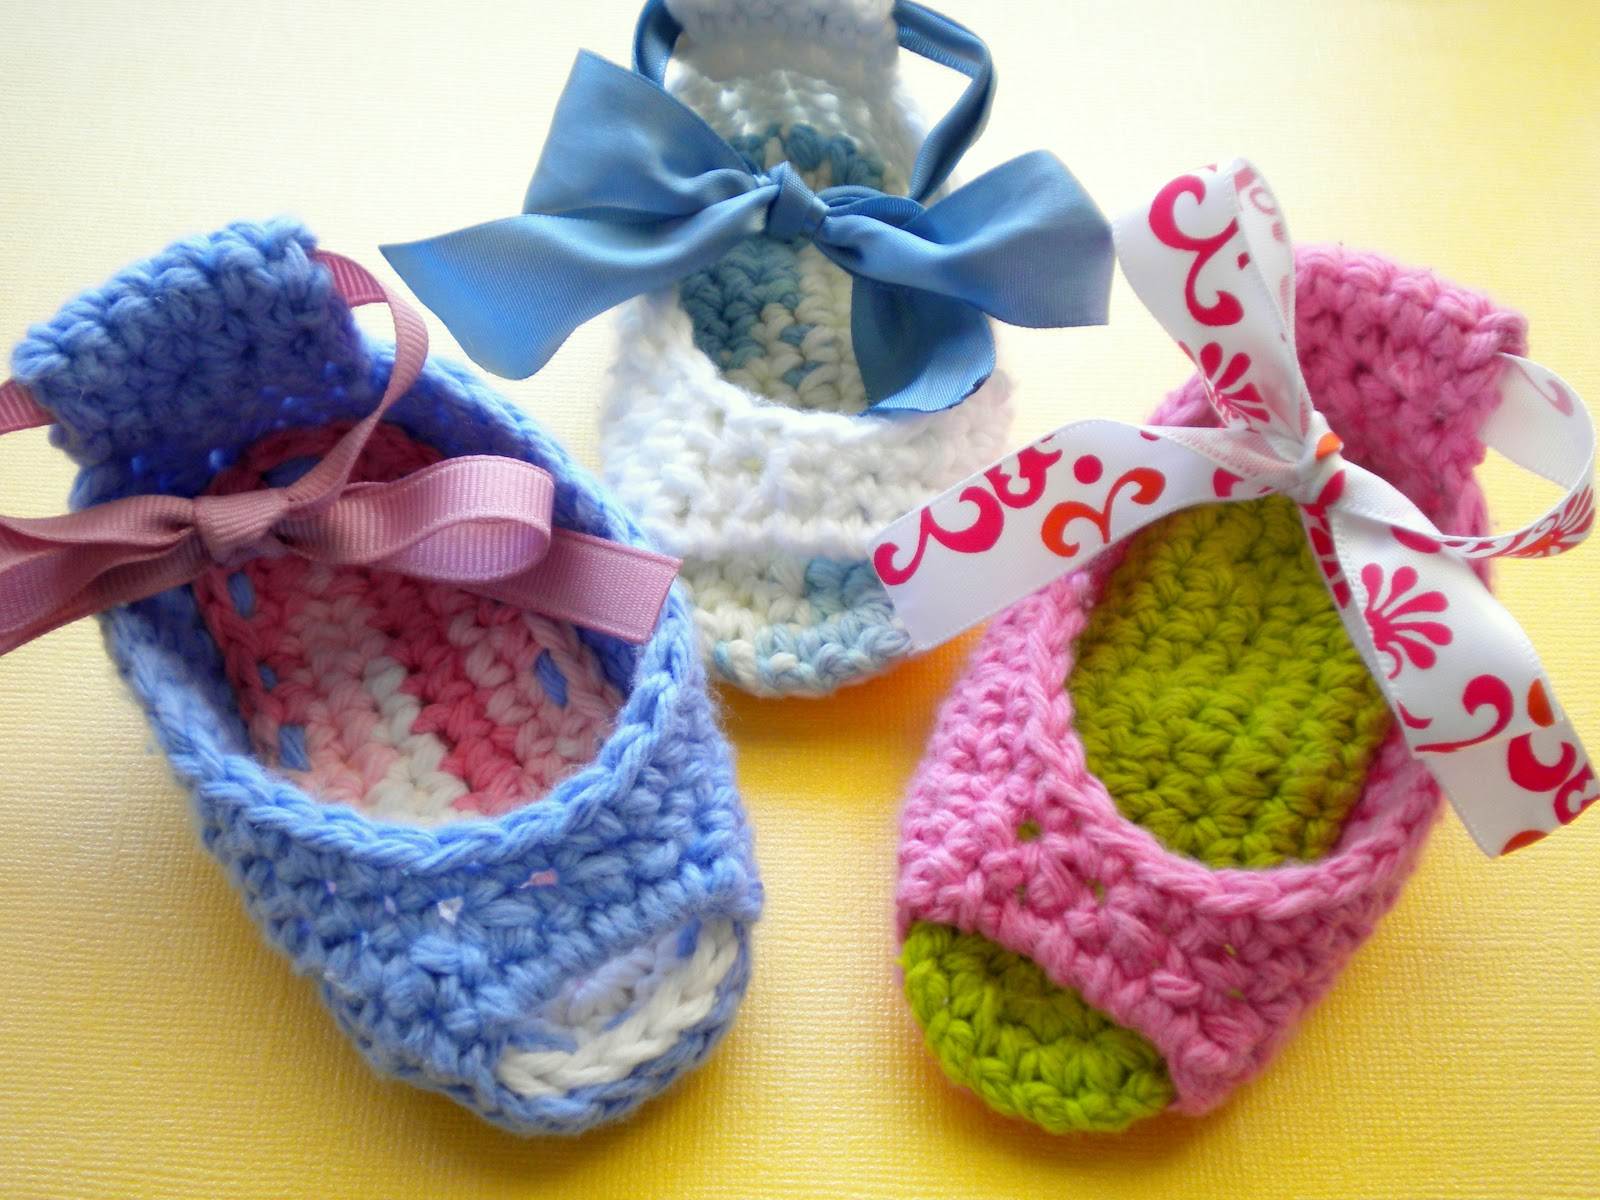 Crochet Baby Booties Pattern For Free : AnnaVirginia Fashion: Piggy Peeps Baby Shoes *Pattern*